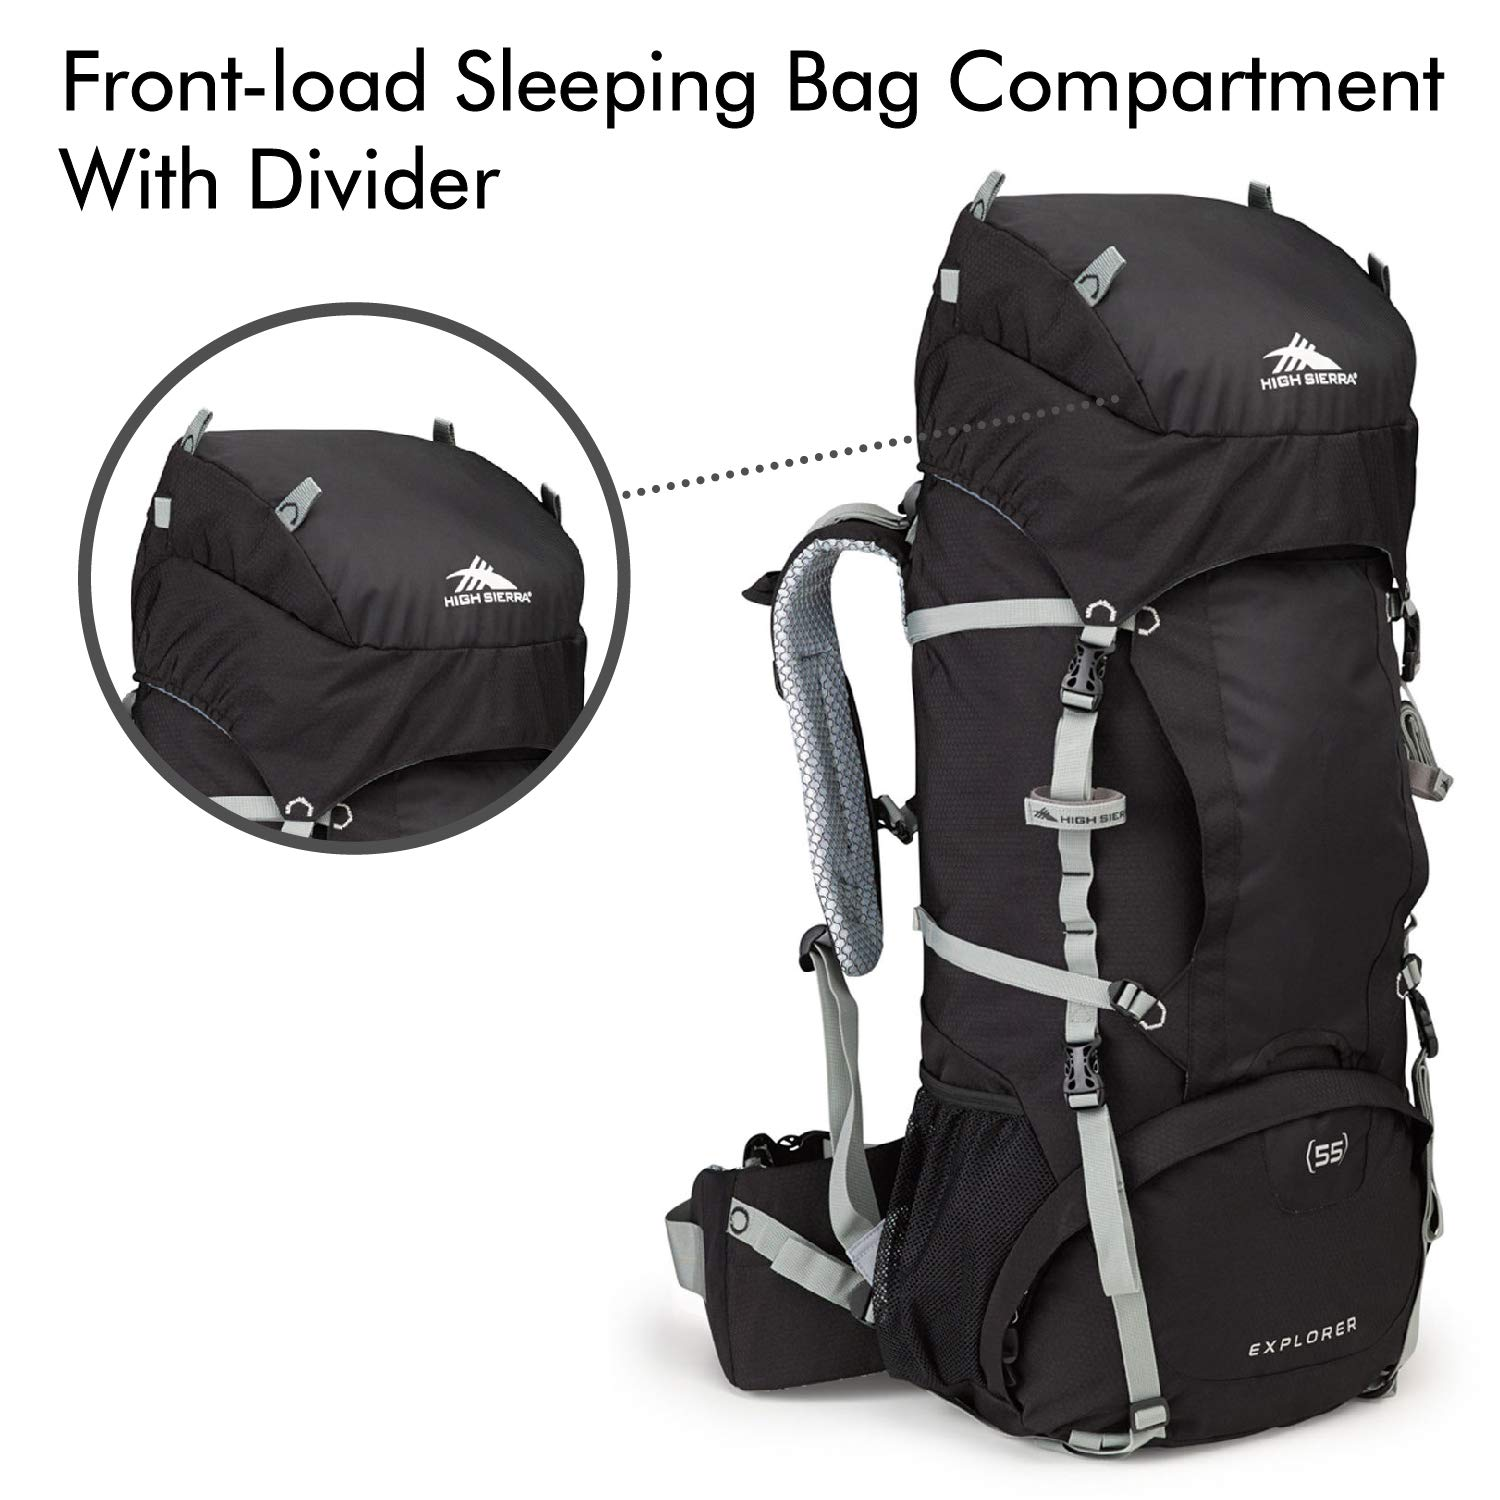 725a8ea5b Amazon.com: High Sierra Explorer 55L Internal Frame Backpack, Top Load 55  Liter Hiking Backpack, Black/Black/Silver: Sports & Outdoors